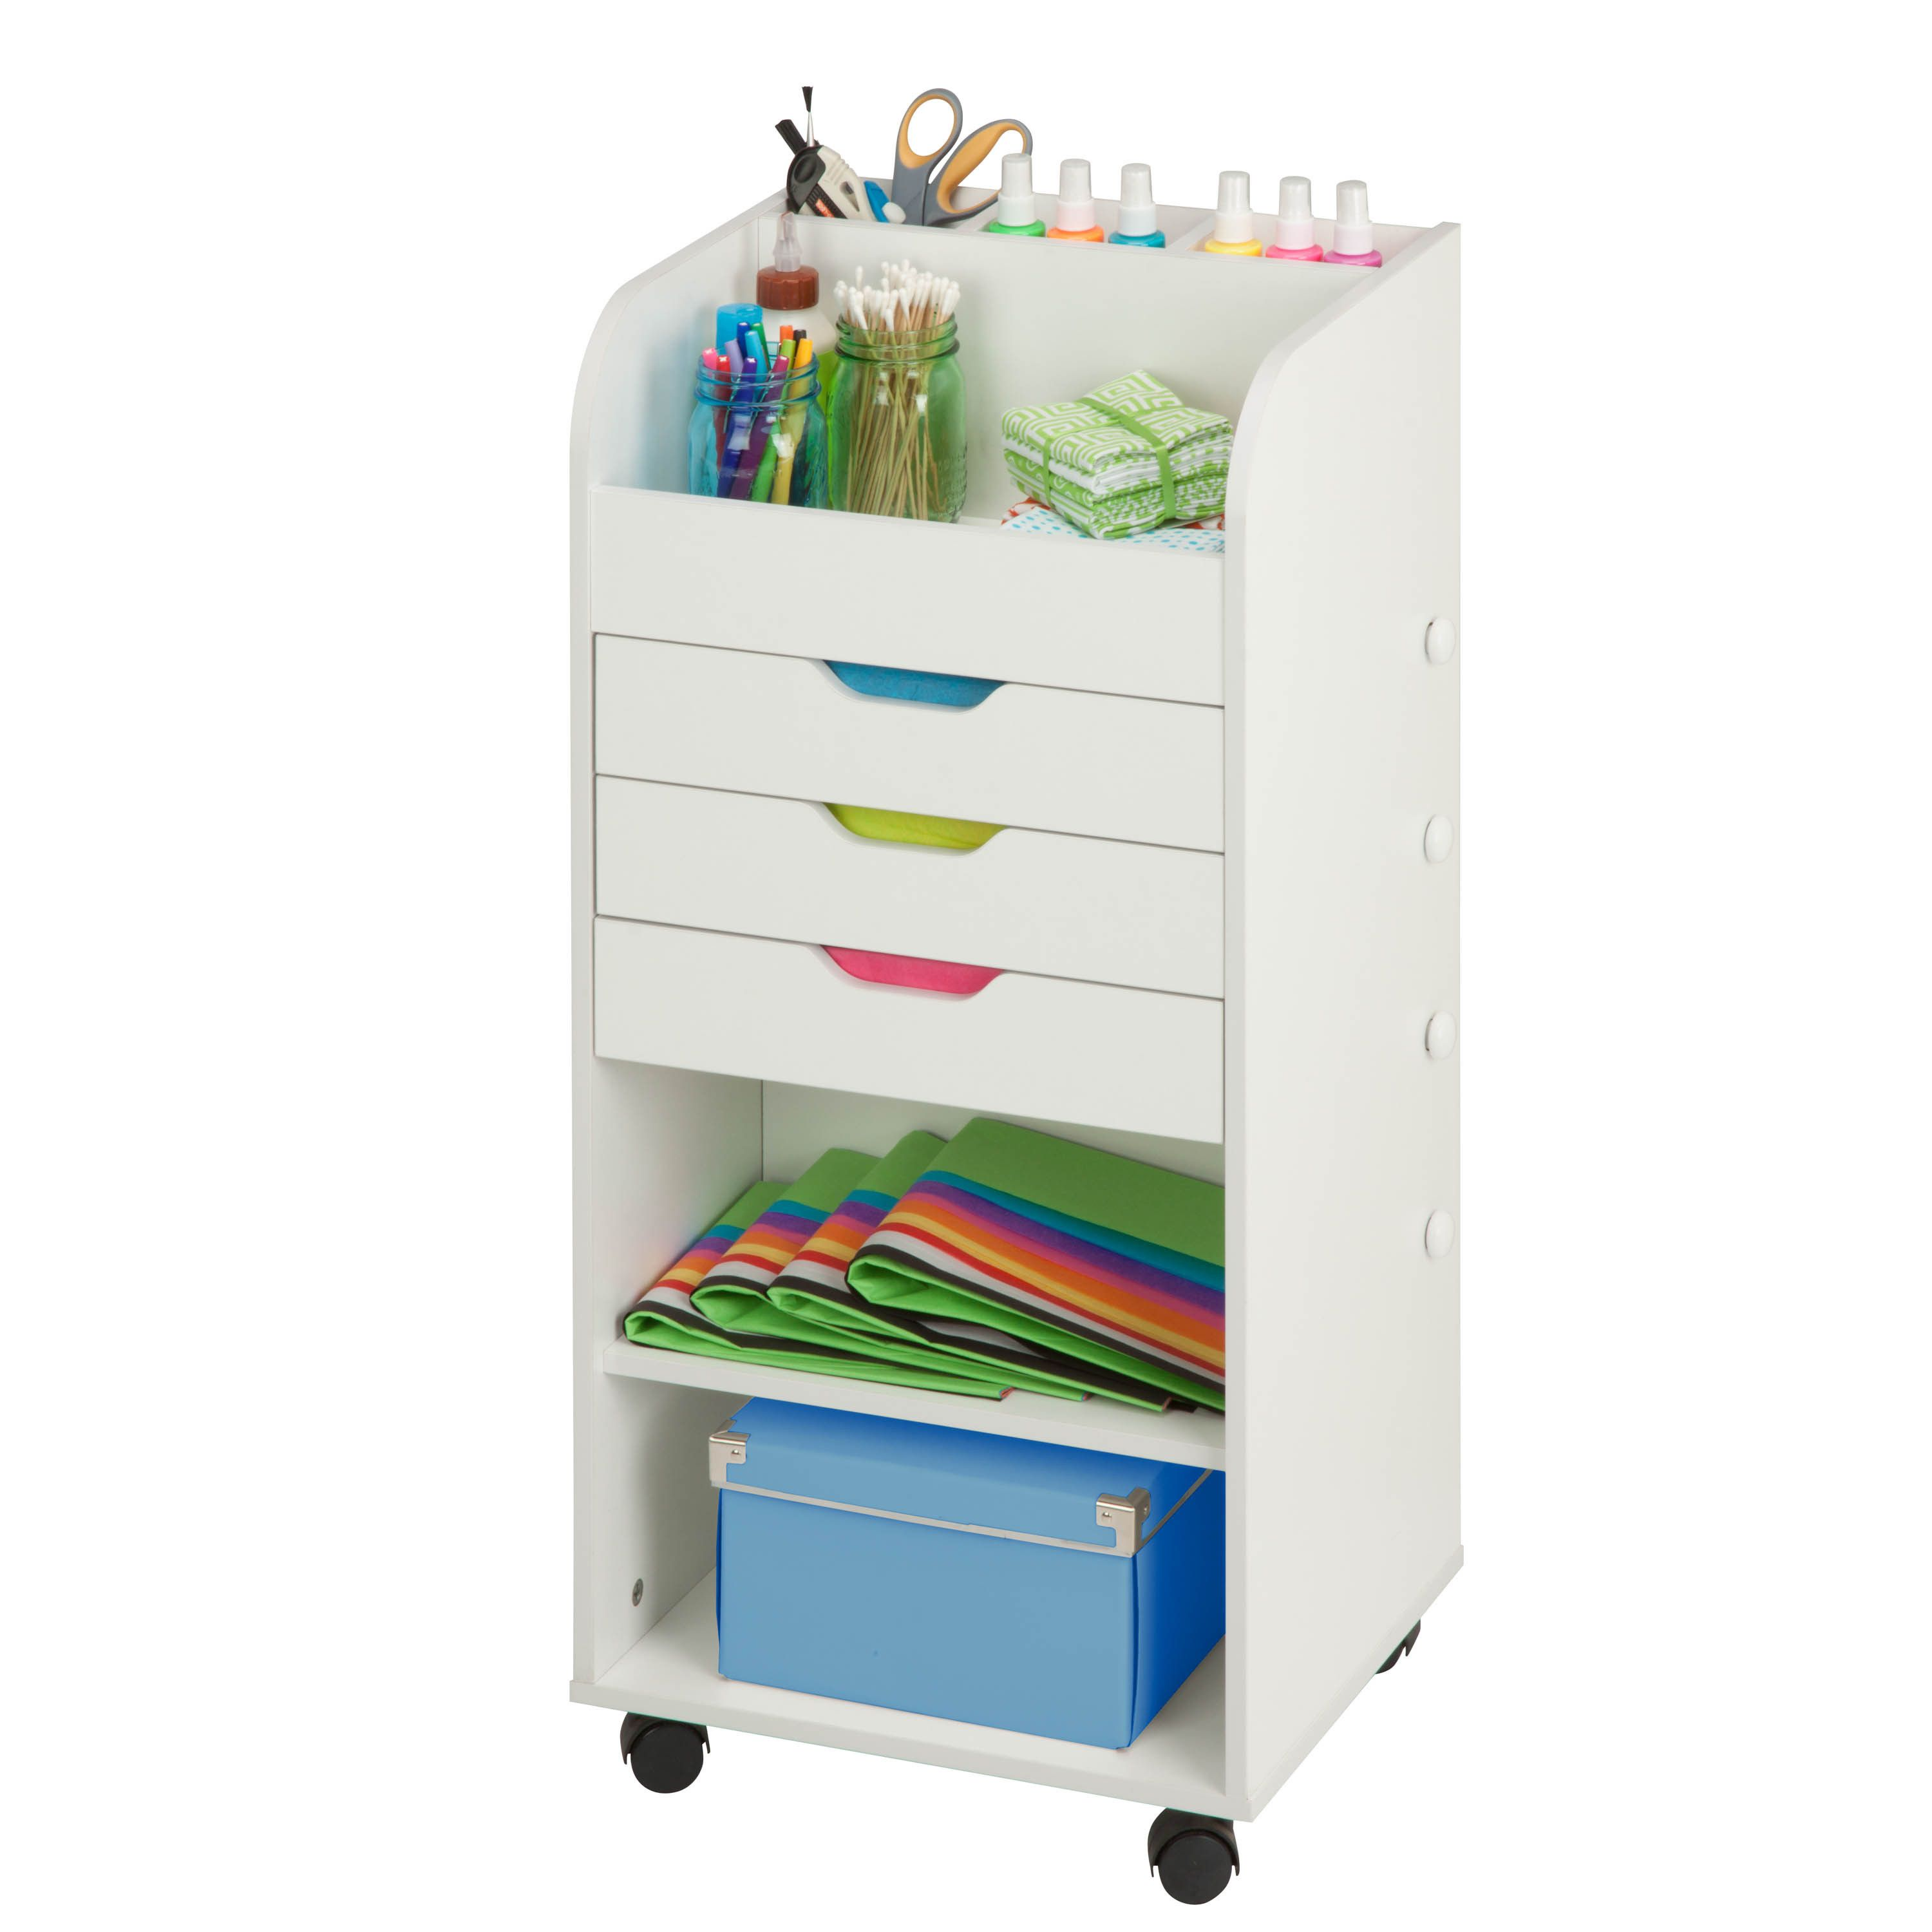 Honey Can Do Rolling Craft Storage Cart, White. Keep Your Crafting  Materials Organized With This Convenient, Rolling Storage Cart. Featuring  Three Built In ...